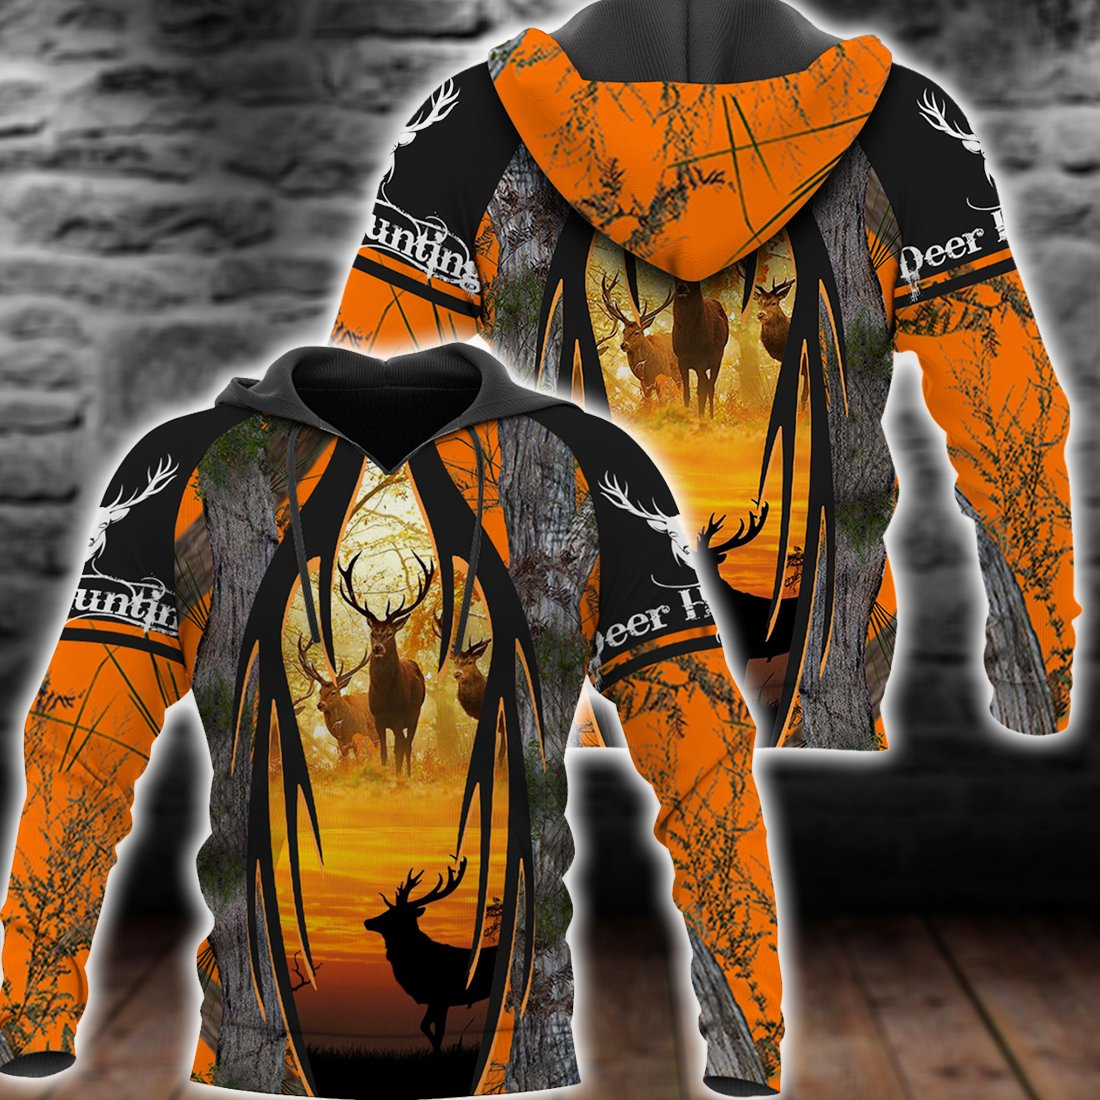 ORANGE DEER HUNT ALL OVER PRINT SHIRTS FOR MEN AND WOMEN